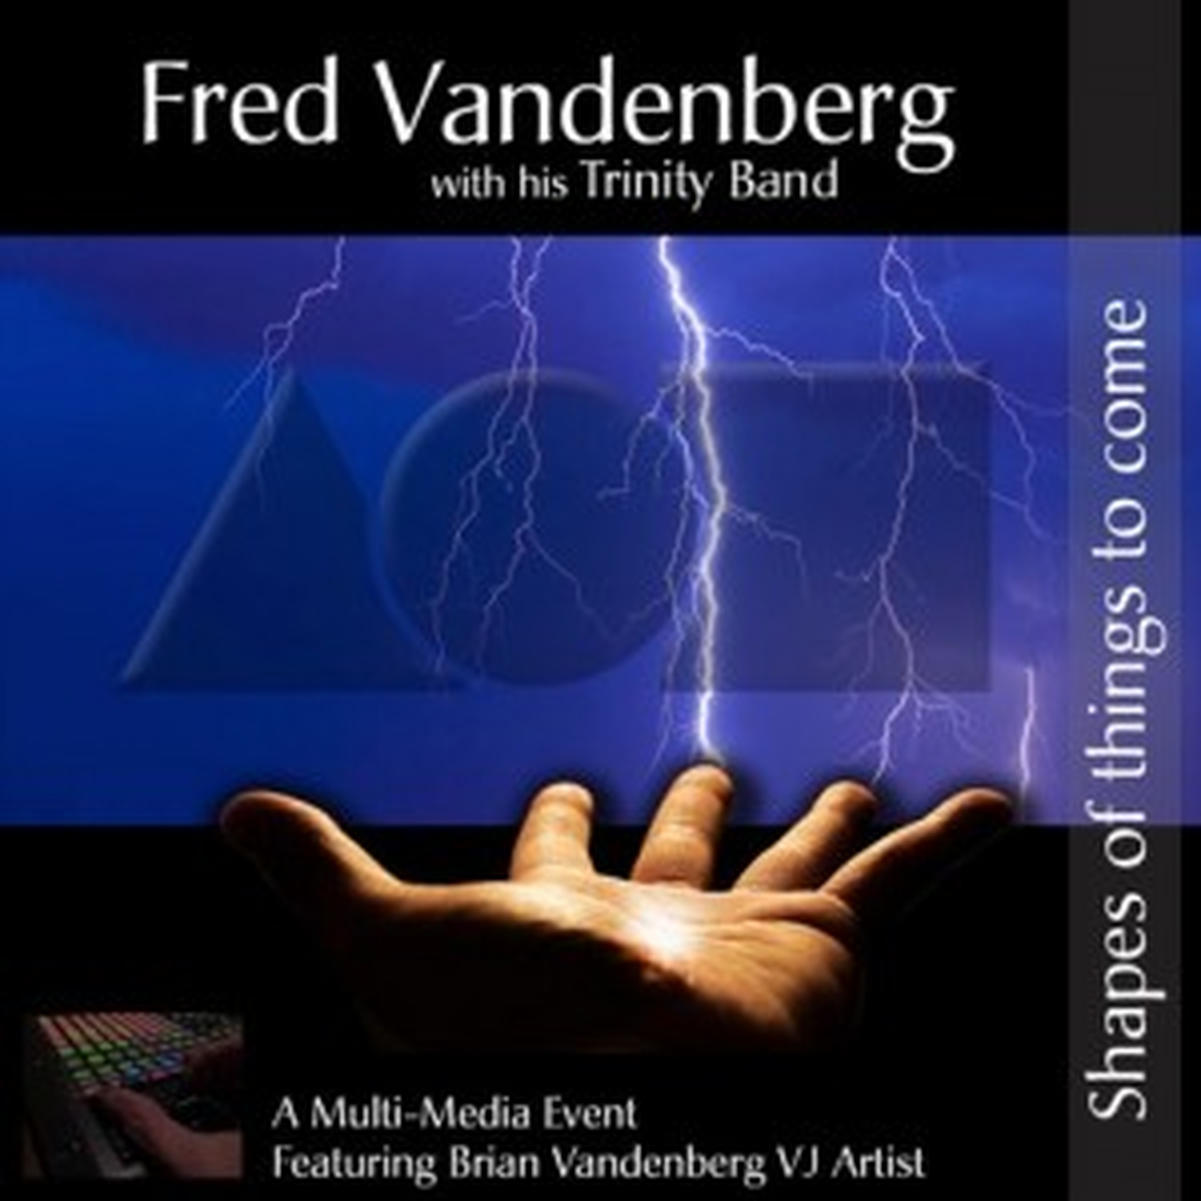 Fred Vandenberg with his Trinity Band